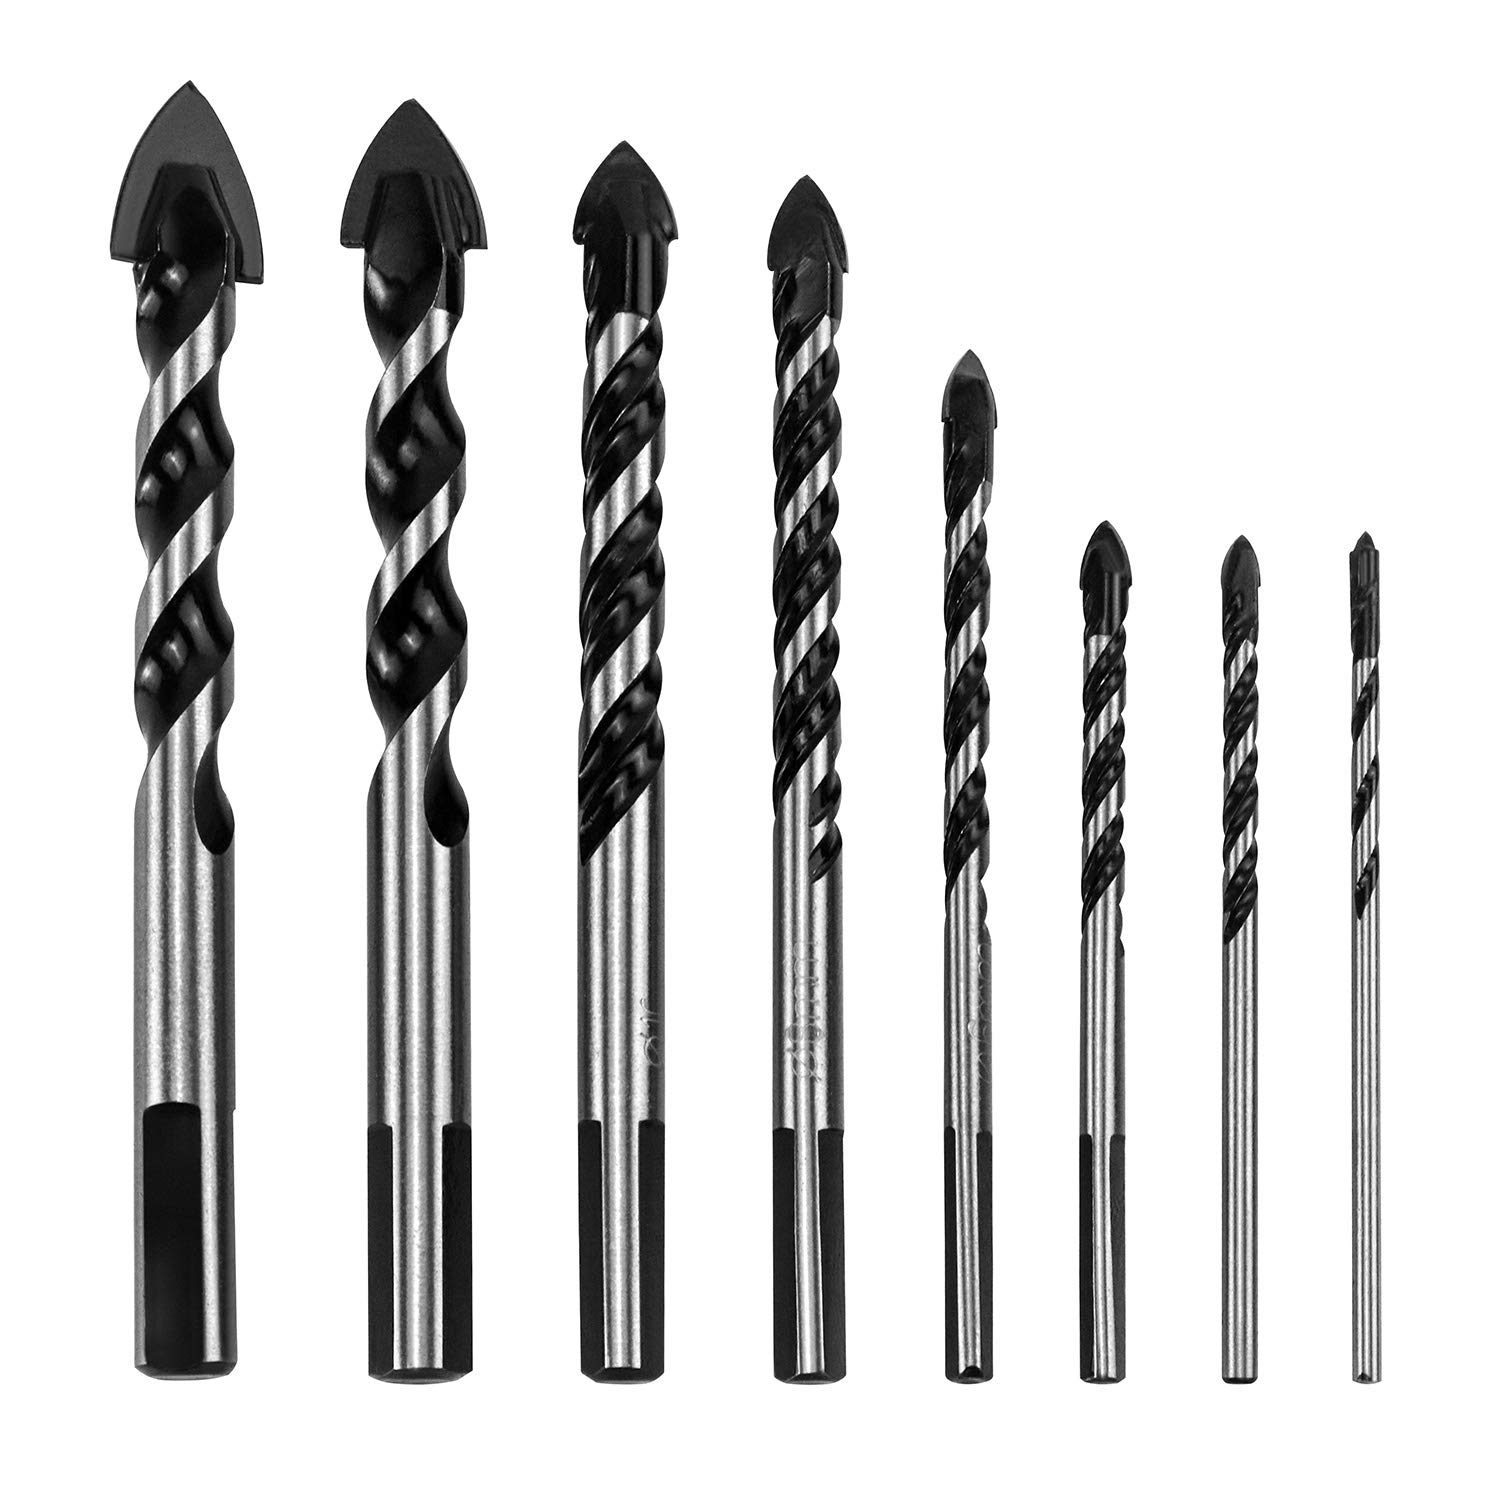 QWORK 8 Pcs Set ( 3, 4, 5, 6, 8, 10, 14, 16 mm ) Multi-Material Drill Bit Set for Tile,Concrete, Brick, Glass, Plastic and Wood Tungsten Carbide Tip Best for Wall Mirror and Ceramic Tile on Concrete and Brick Wall